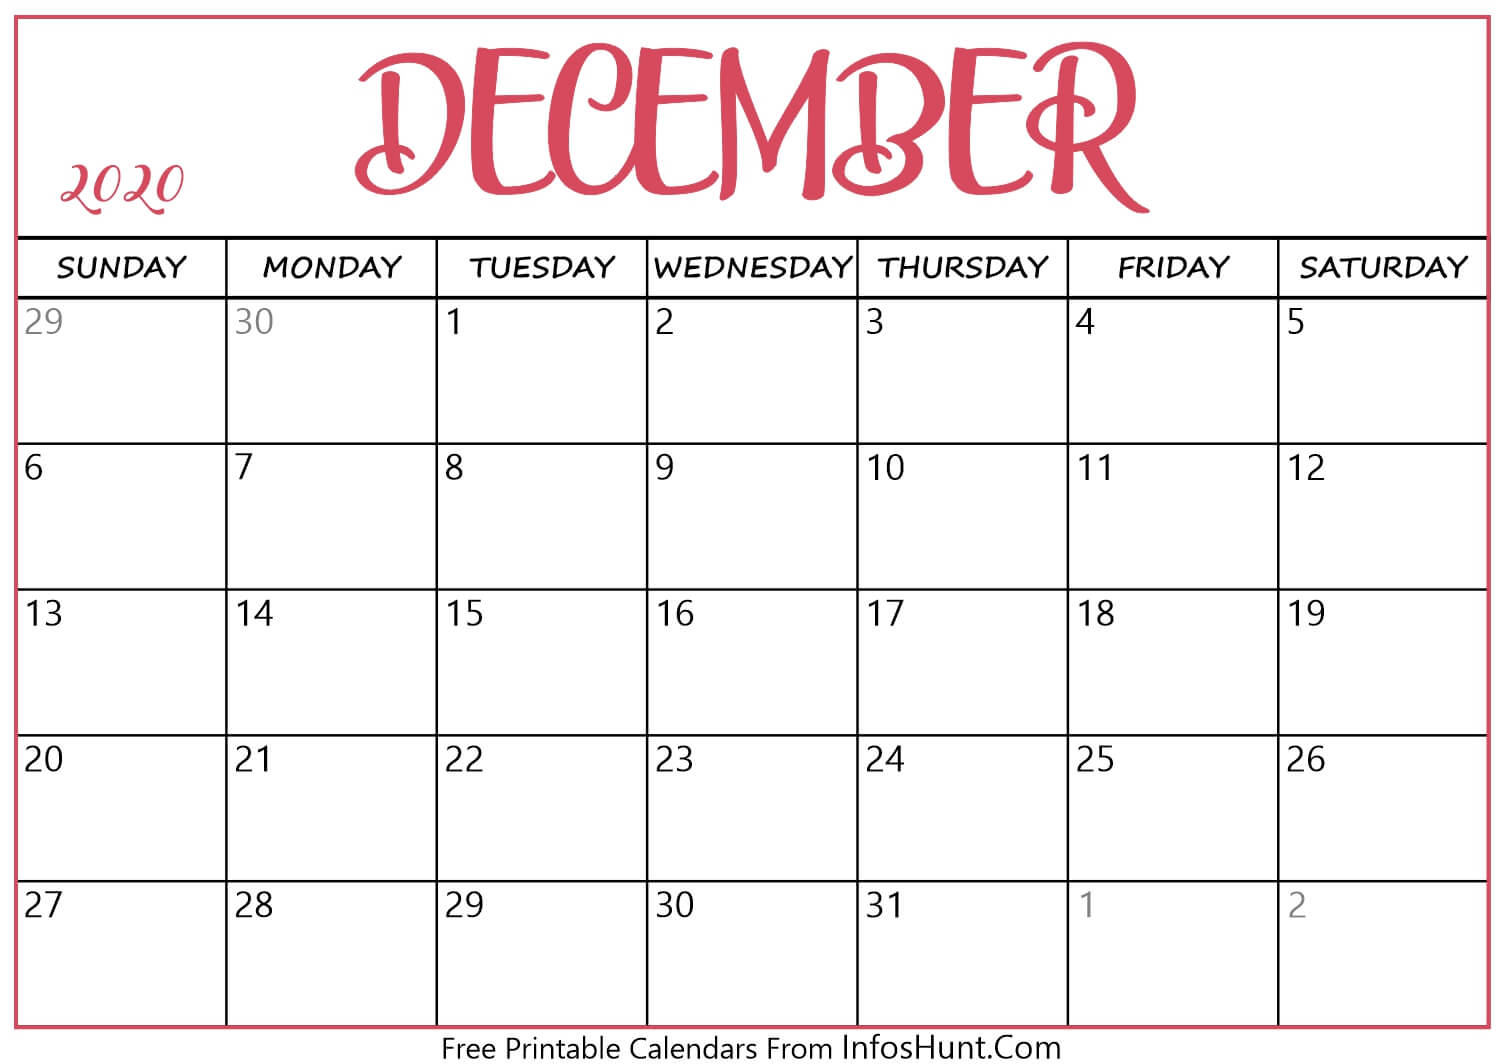 December 2020 Calendar Printable - Free Yearly & Monthly ...